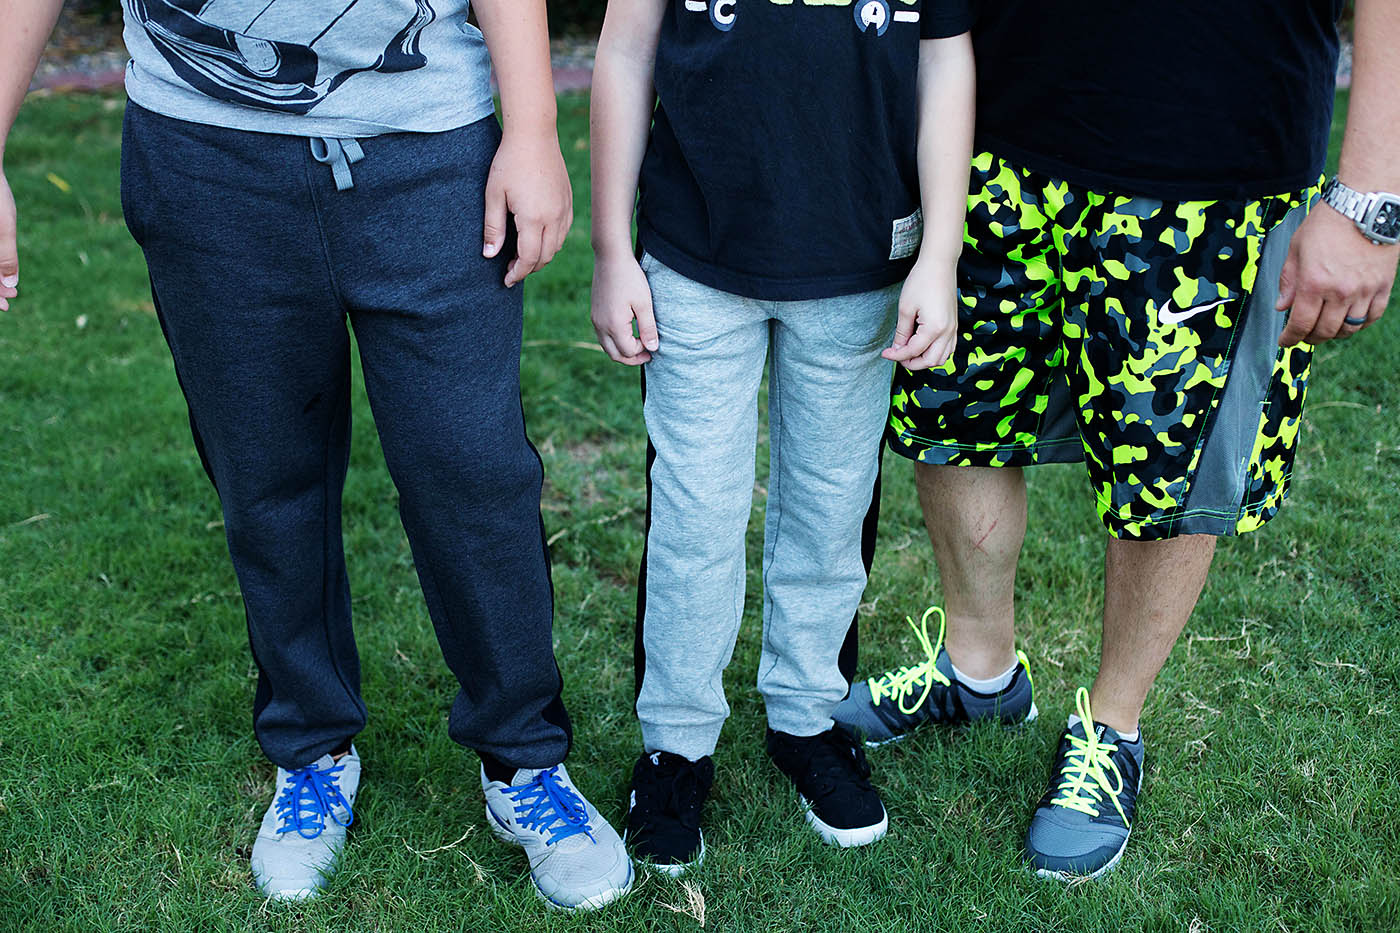 Staying active with the kids + JCPenney giveaway